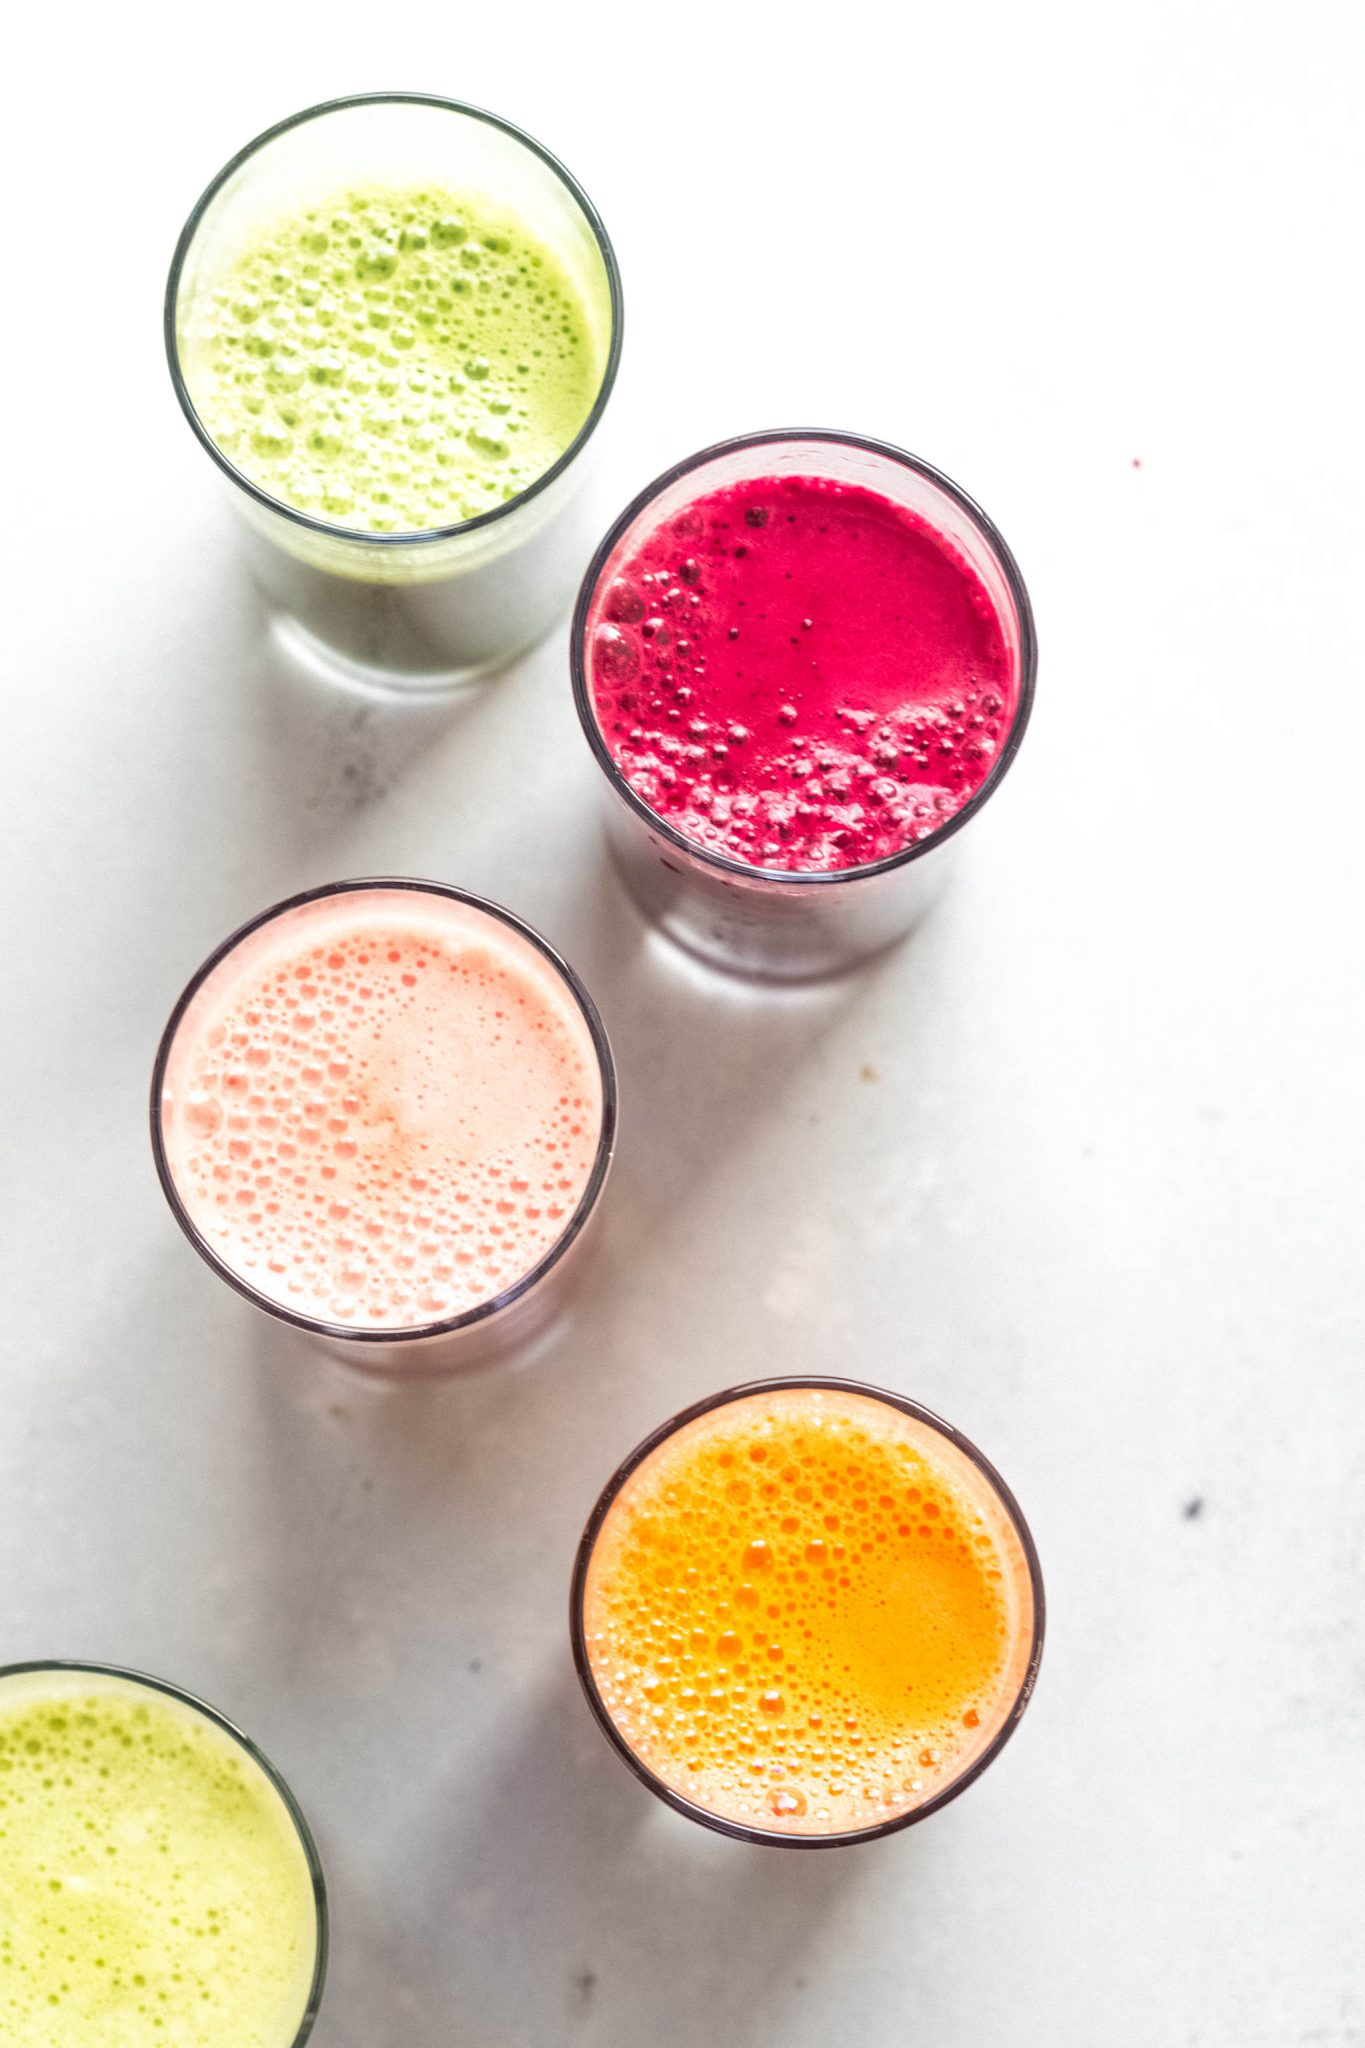 "Five different colorful juices in a row shot from overhead. ""Width ="" 1365 ""height ="" 2048 ""srcset ="" https://www.platingsandpairings.com/wp-content/uploads/2019/03/juice-cleanse-recipes -13.jpg 1365w, https: // www .platingsandpairings.com / wp-content / uploads / 2019/03 / juice-cleanse-recipes-13-100x150.jpg 100w, https://www.platingsandpairings.com/wp -content / uploads / 2019/03 / juice- cleanse-recipes-13-333x500.jpg 333w, https://www.platingsandpairings.com/wp-content/uploads/2019/03/juice-cleanse-recipes-13- 768x1152.jpg 768w, https: // www. platingsandpairings.com/wp-content/uploads/2019/03/juice-cleanse-recipes-13-683x1024.jpg 683w, https://www.platingsandpairings.com/wp- content / uploads / 2019/03 / juice-cleanse -recepts-13-1460x2190.jpg 1460w ""sizes ="" (max-width: 1365px) 100vw, 1365px"